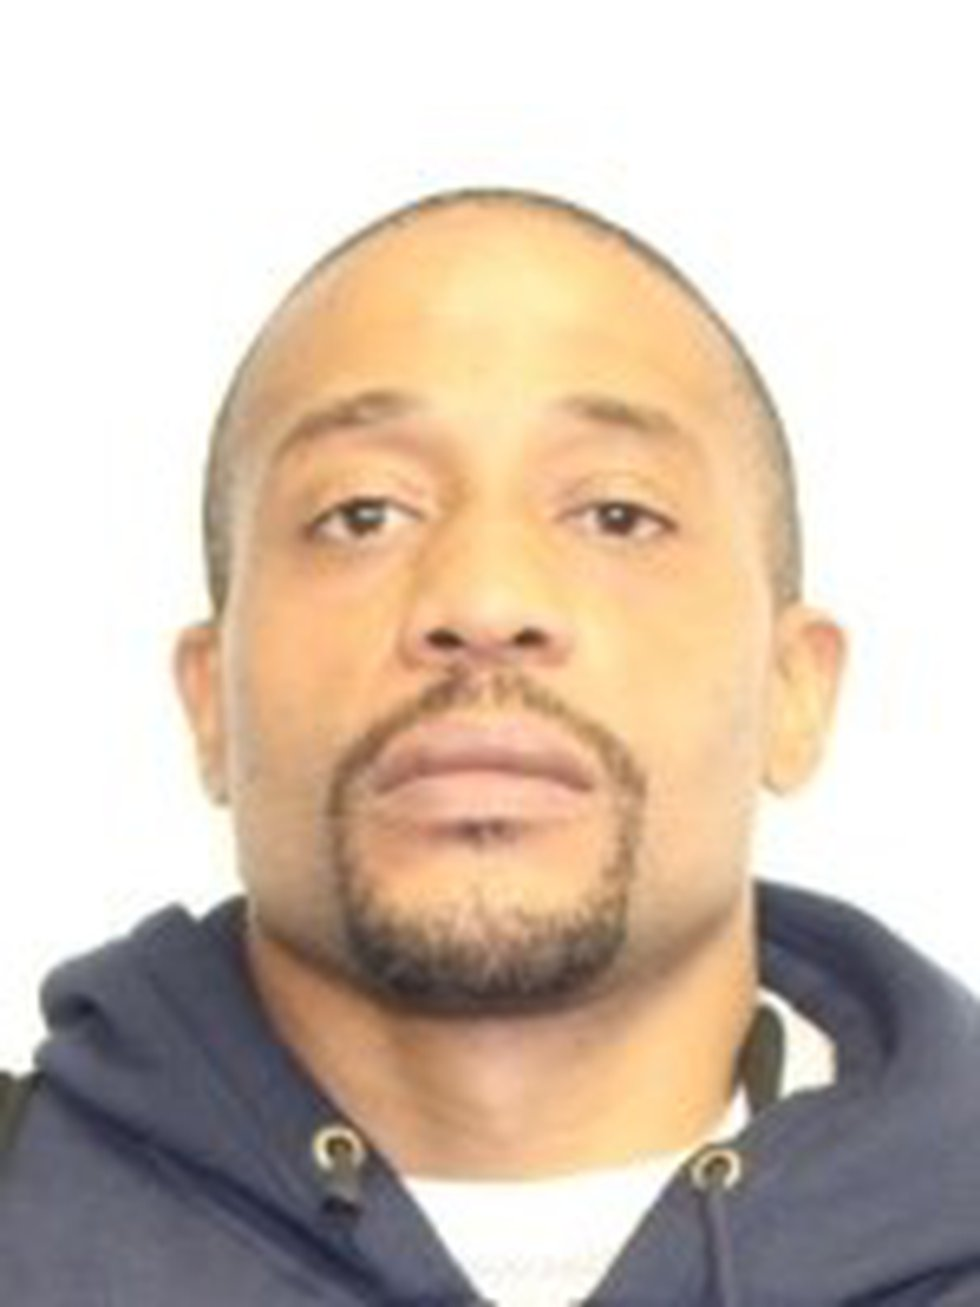 Domonique Powell, 38, of Akron arrested for answering an on-line advertisement offering...